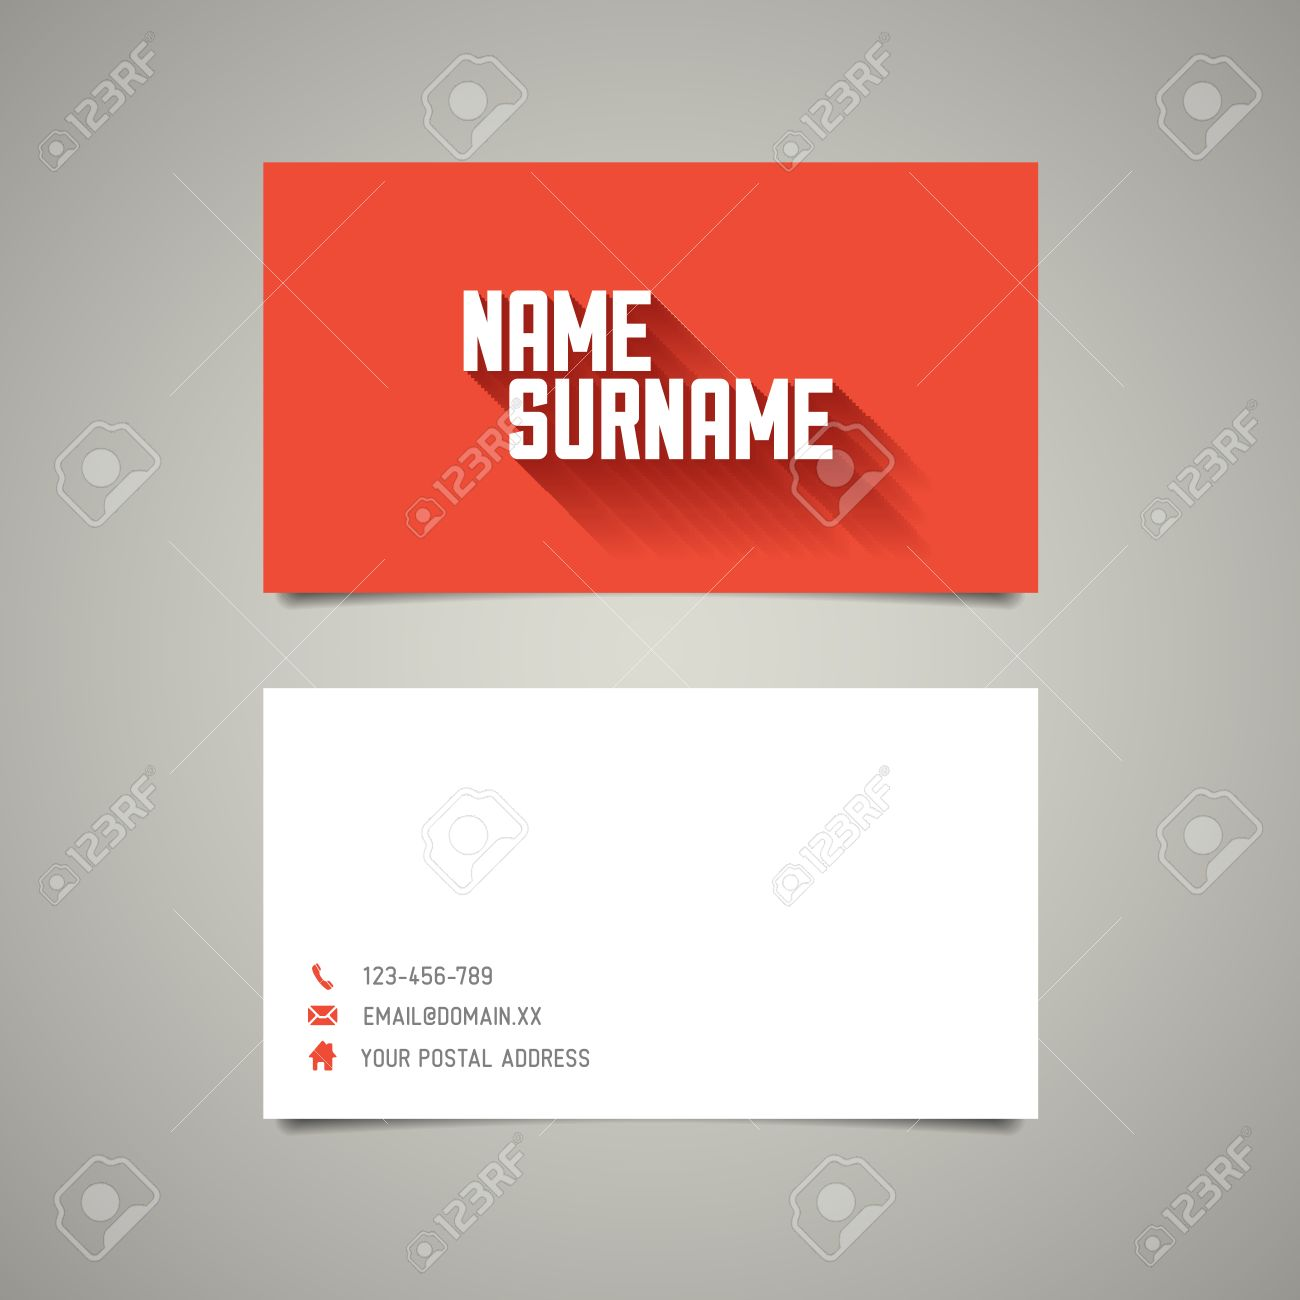 Modern simple business card template with big name surname and modern simple business card template with big name surname and long shadow effect stock vector fbccfo Choice Image